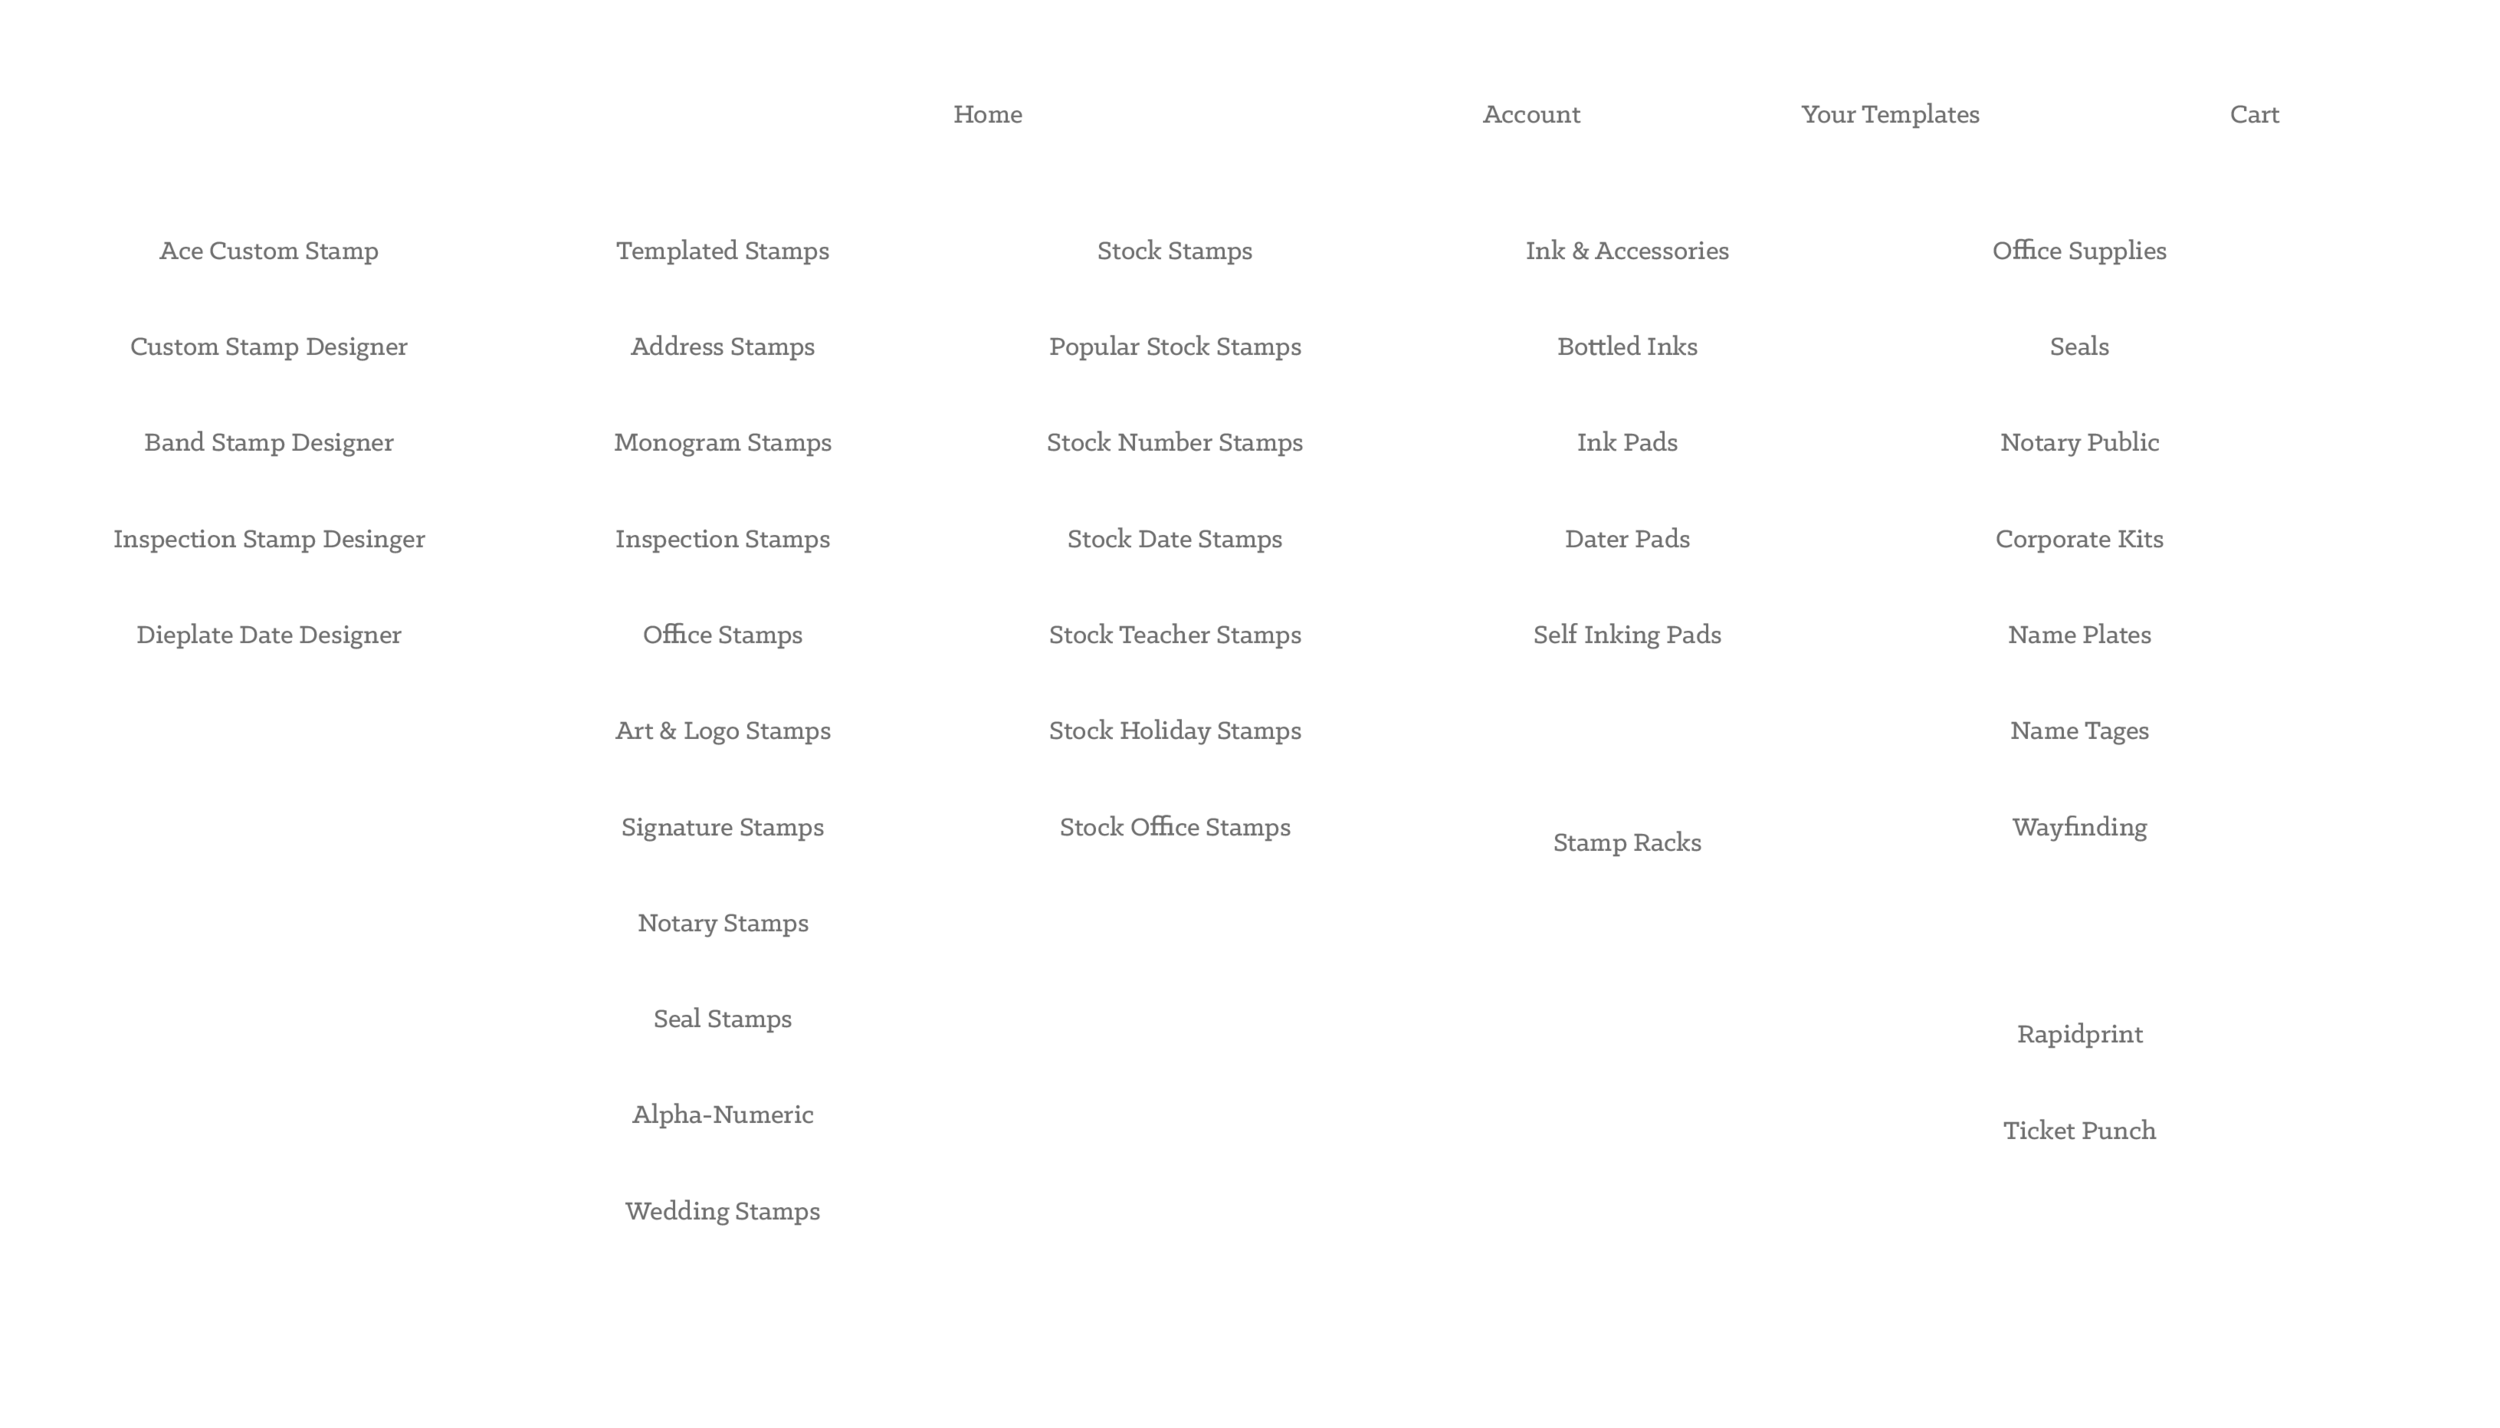 SiteMap-01.png